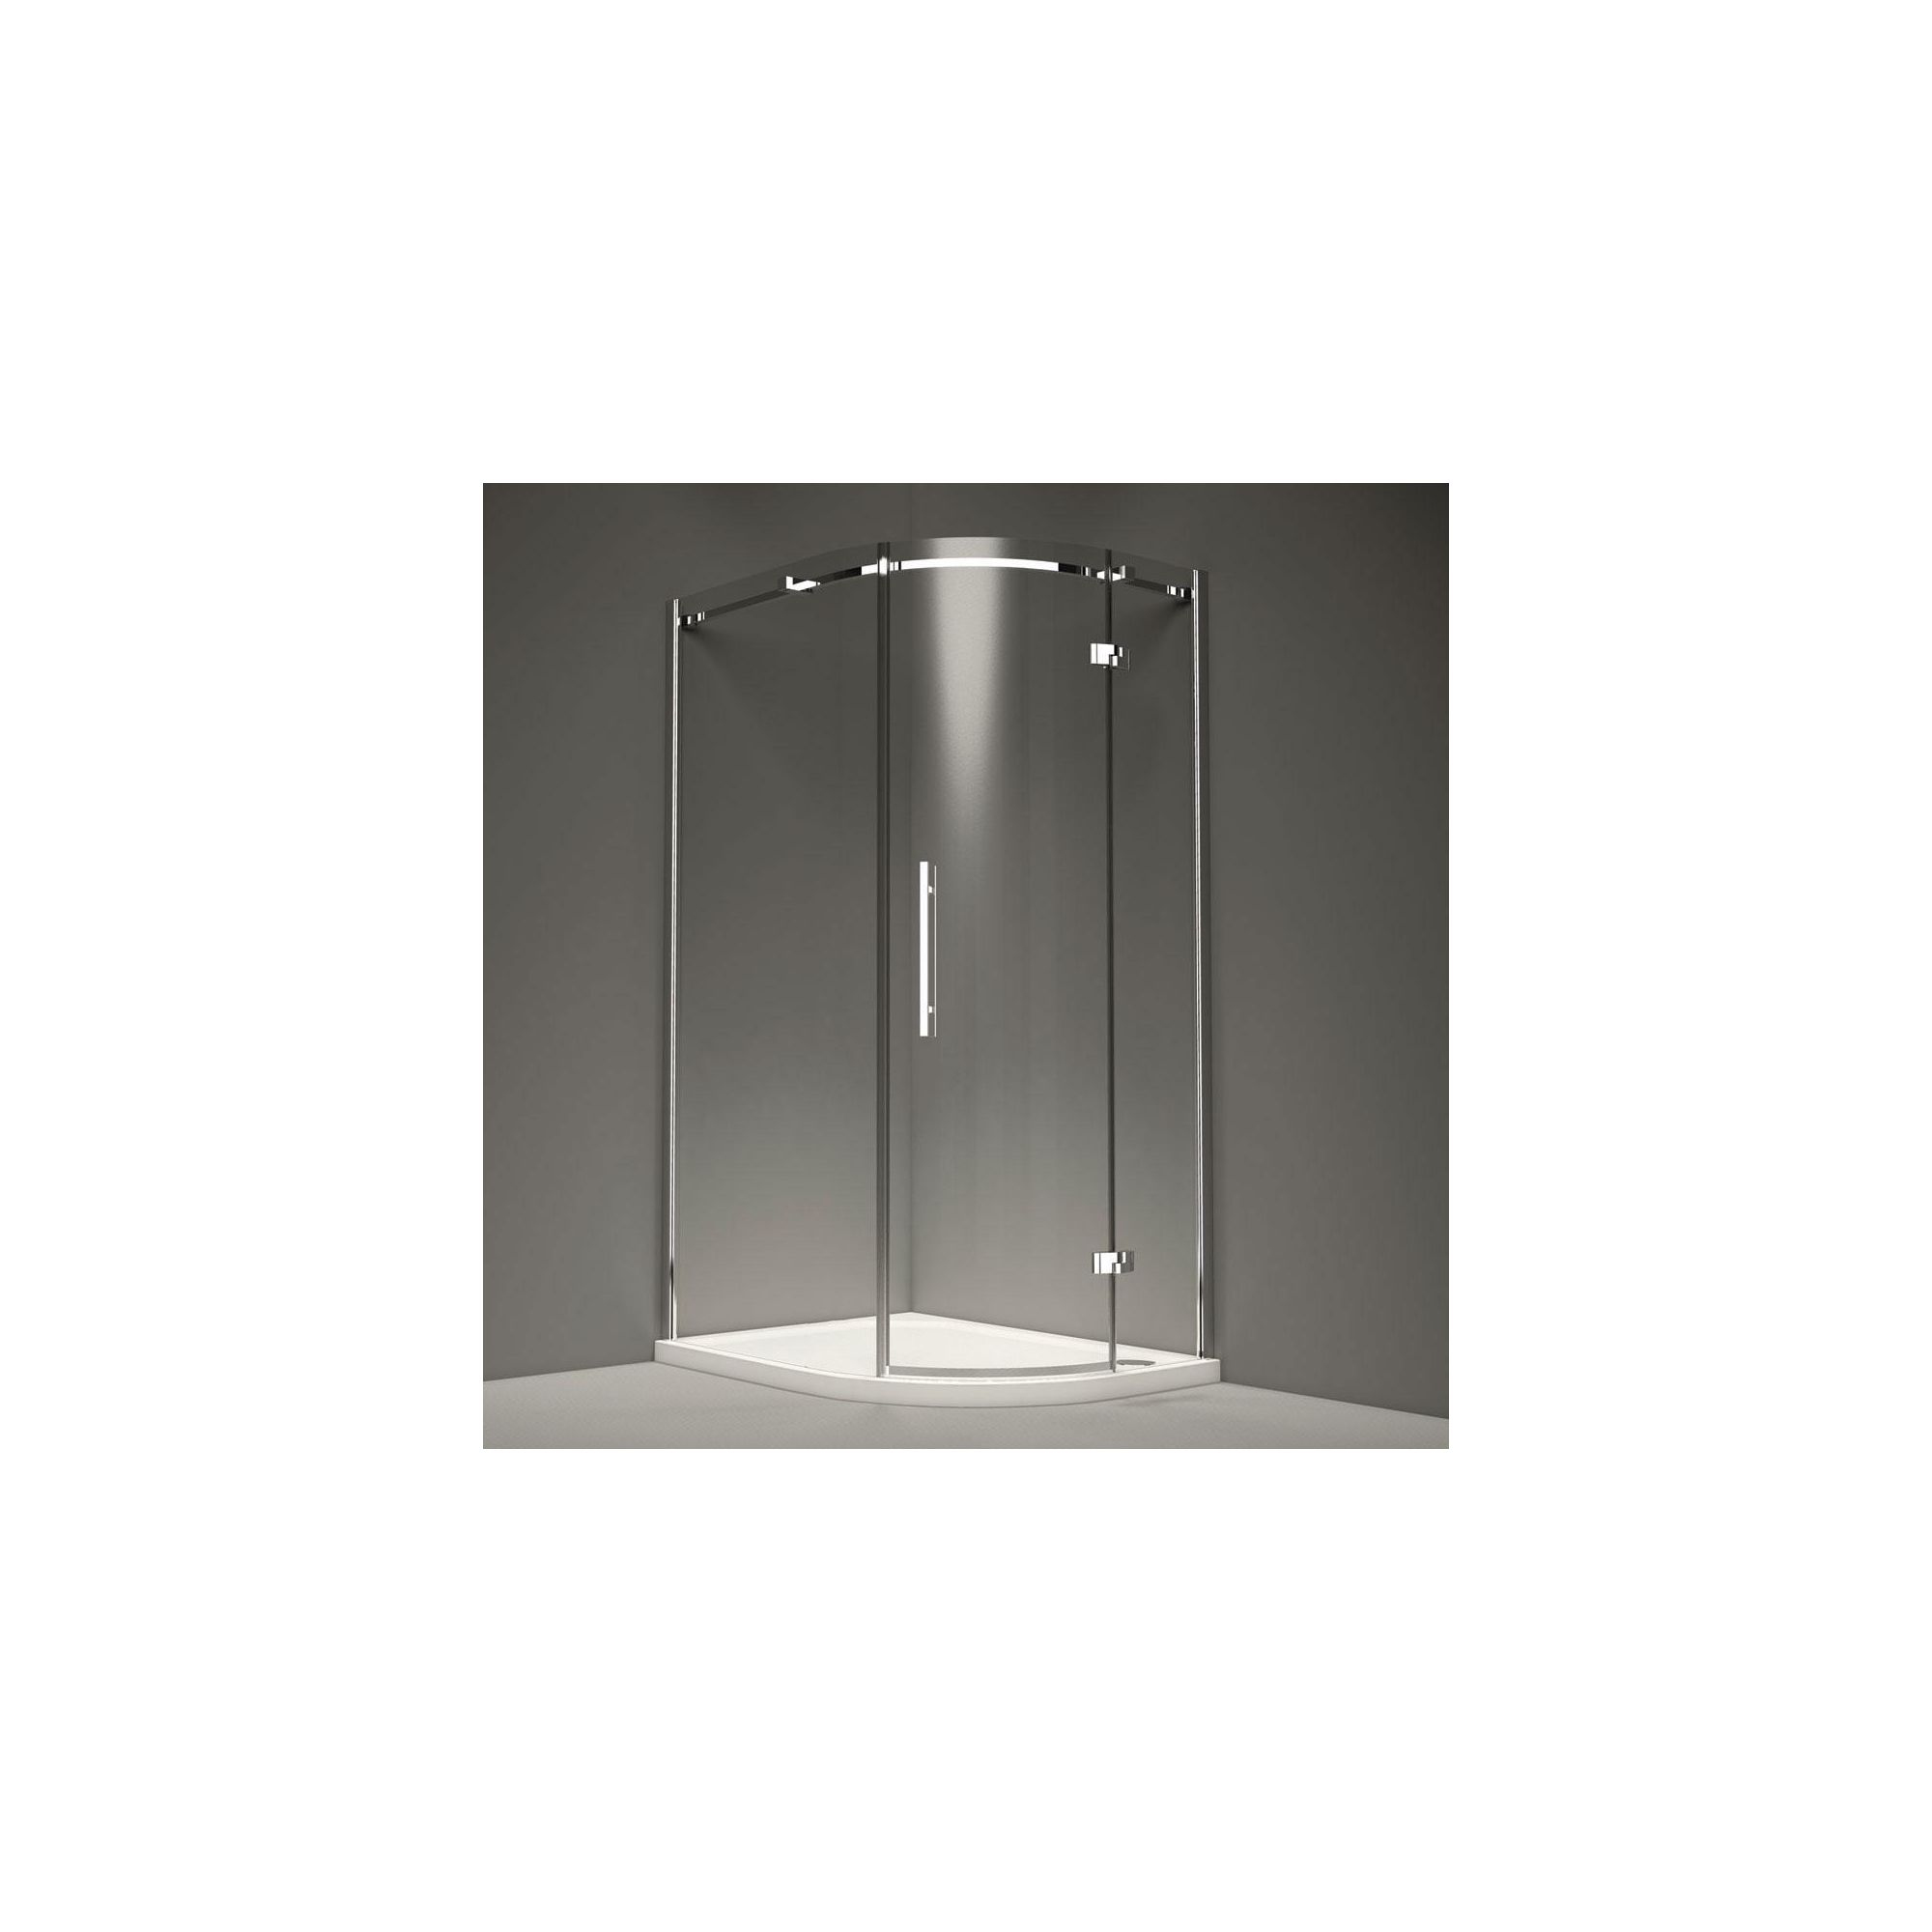 Merlyn Series 9 Single Quadrant Shower Door, 800mm x 800mm, 8mm Glass, Right Handed at Tesco Direct